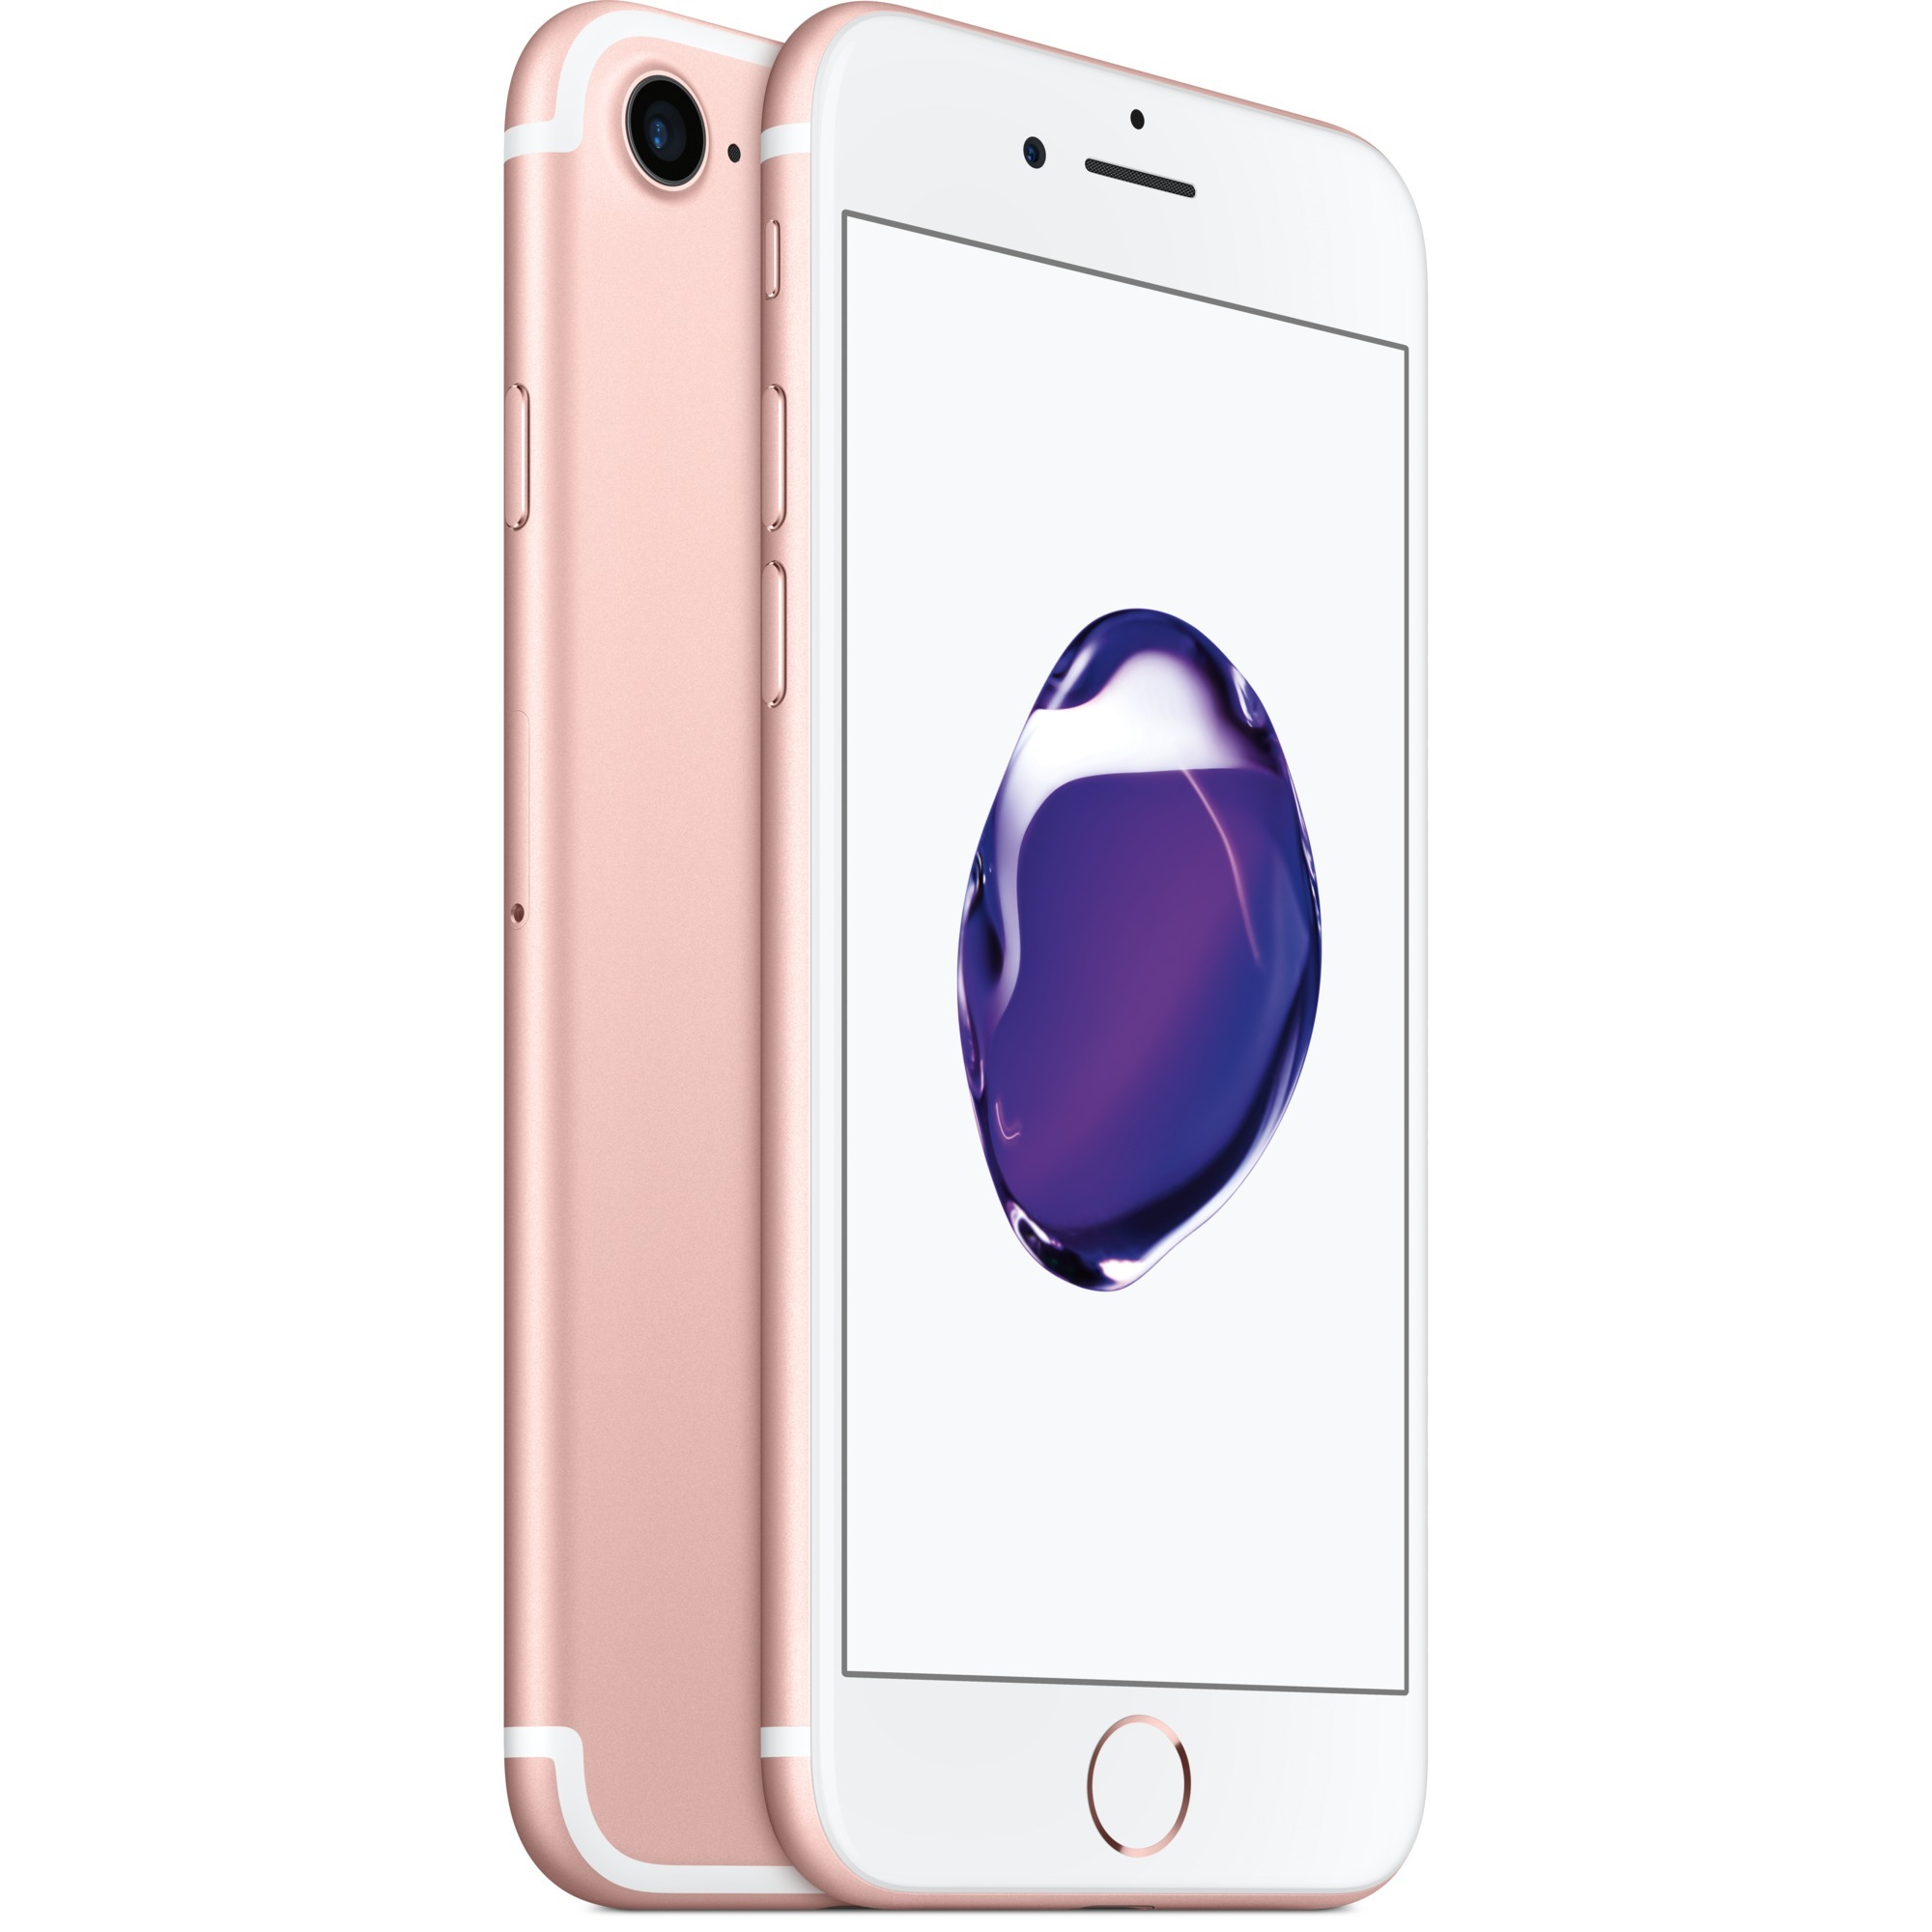 iphone-7-single-sim-4g-256gb-lyserod-guld-mobiltelefon